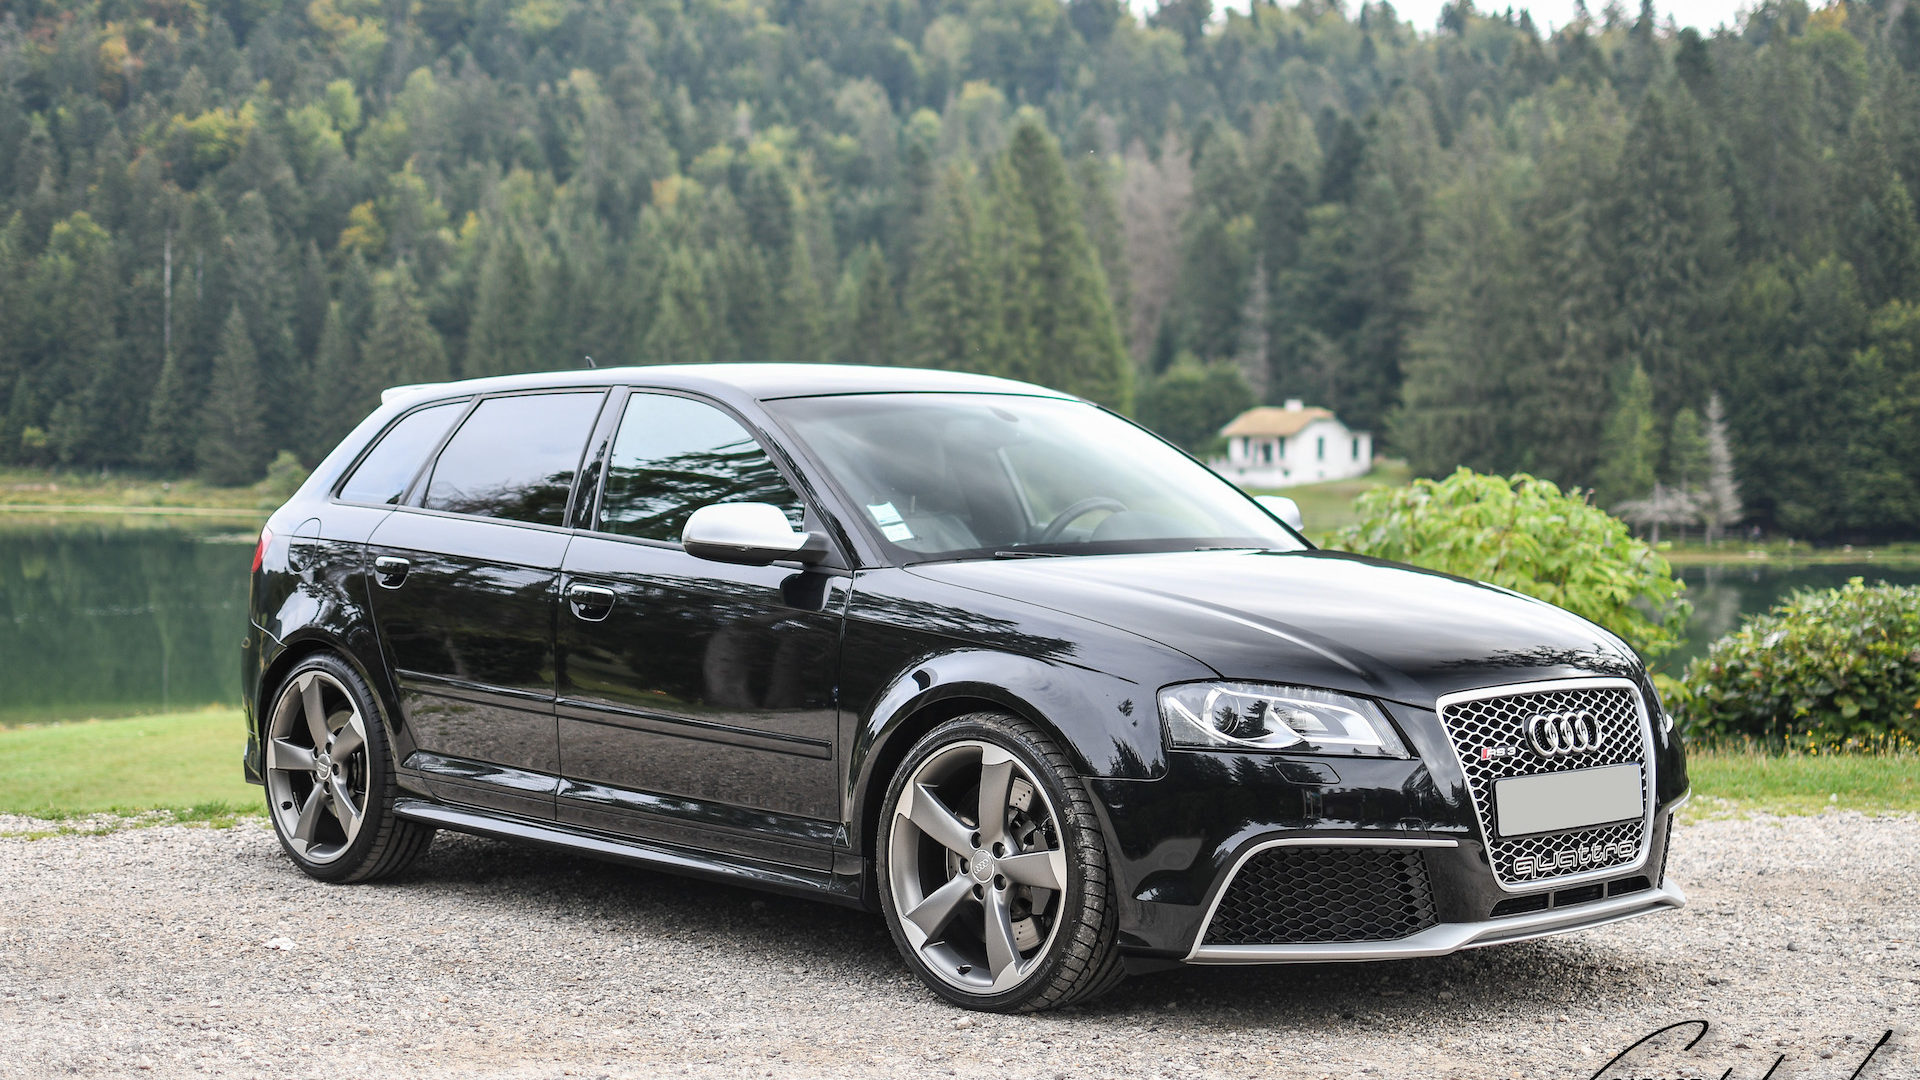 audi-rs3-noir-carbone-2011-1